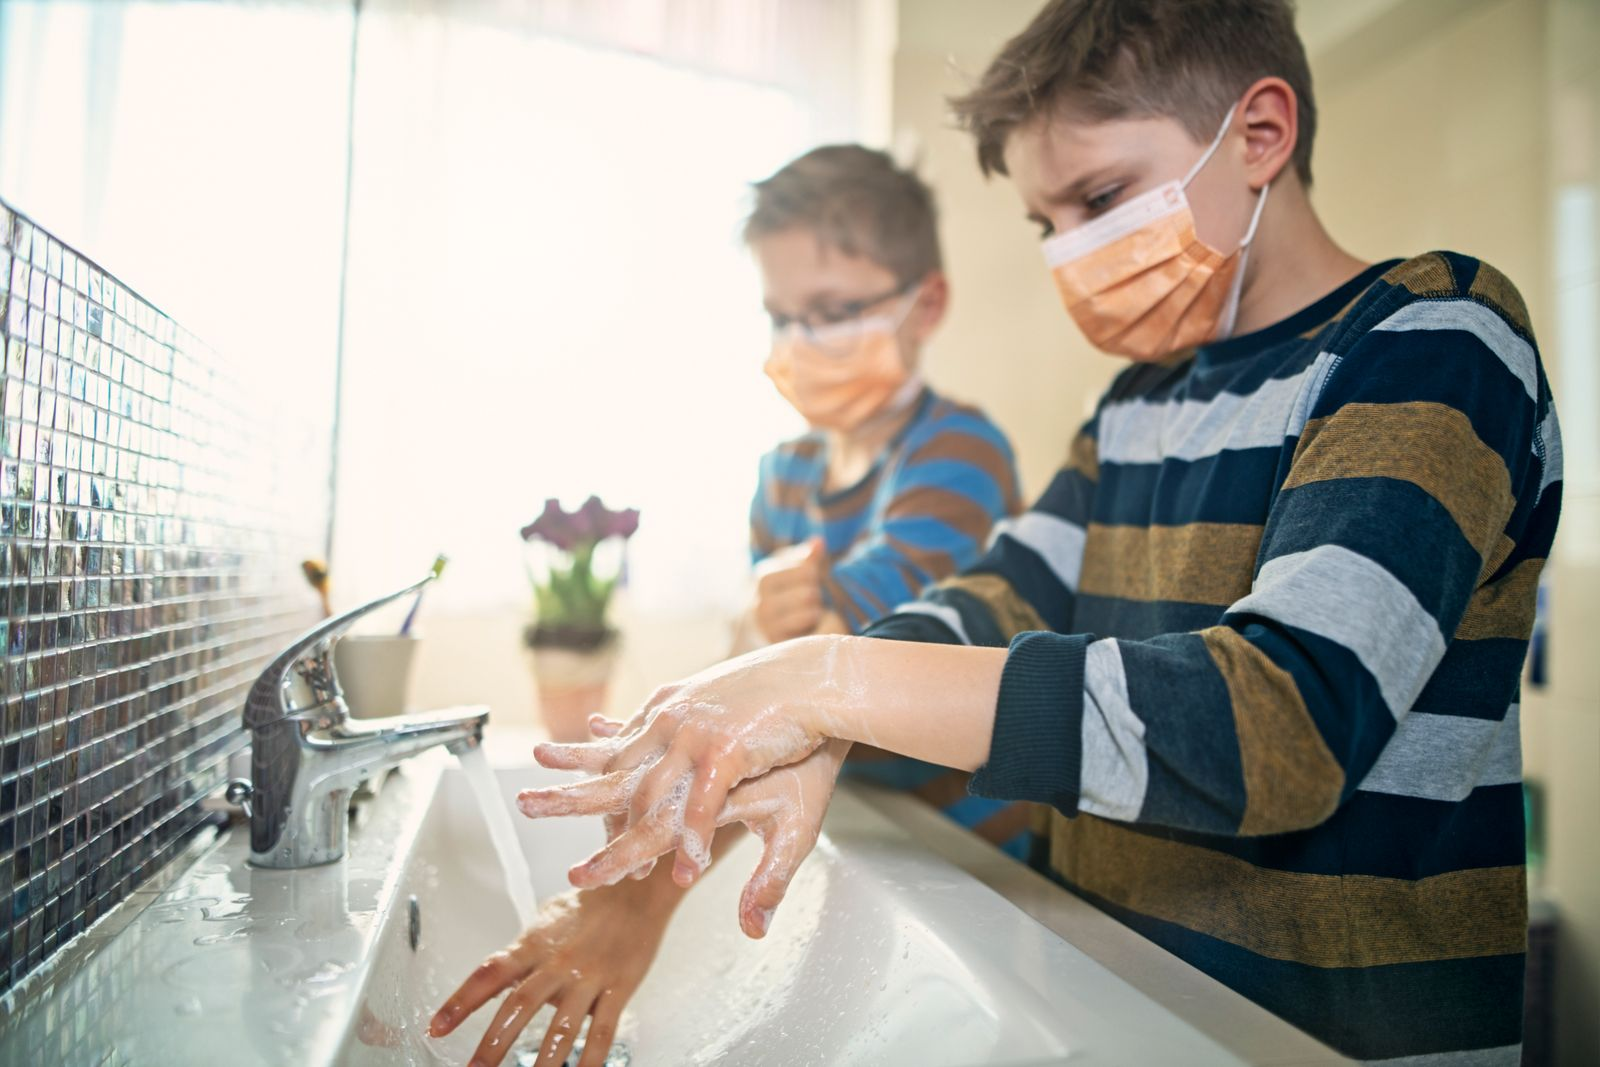 Little boys wearing face masks washing hands thoroughly